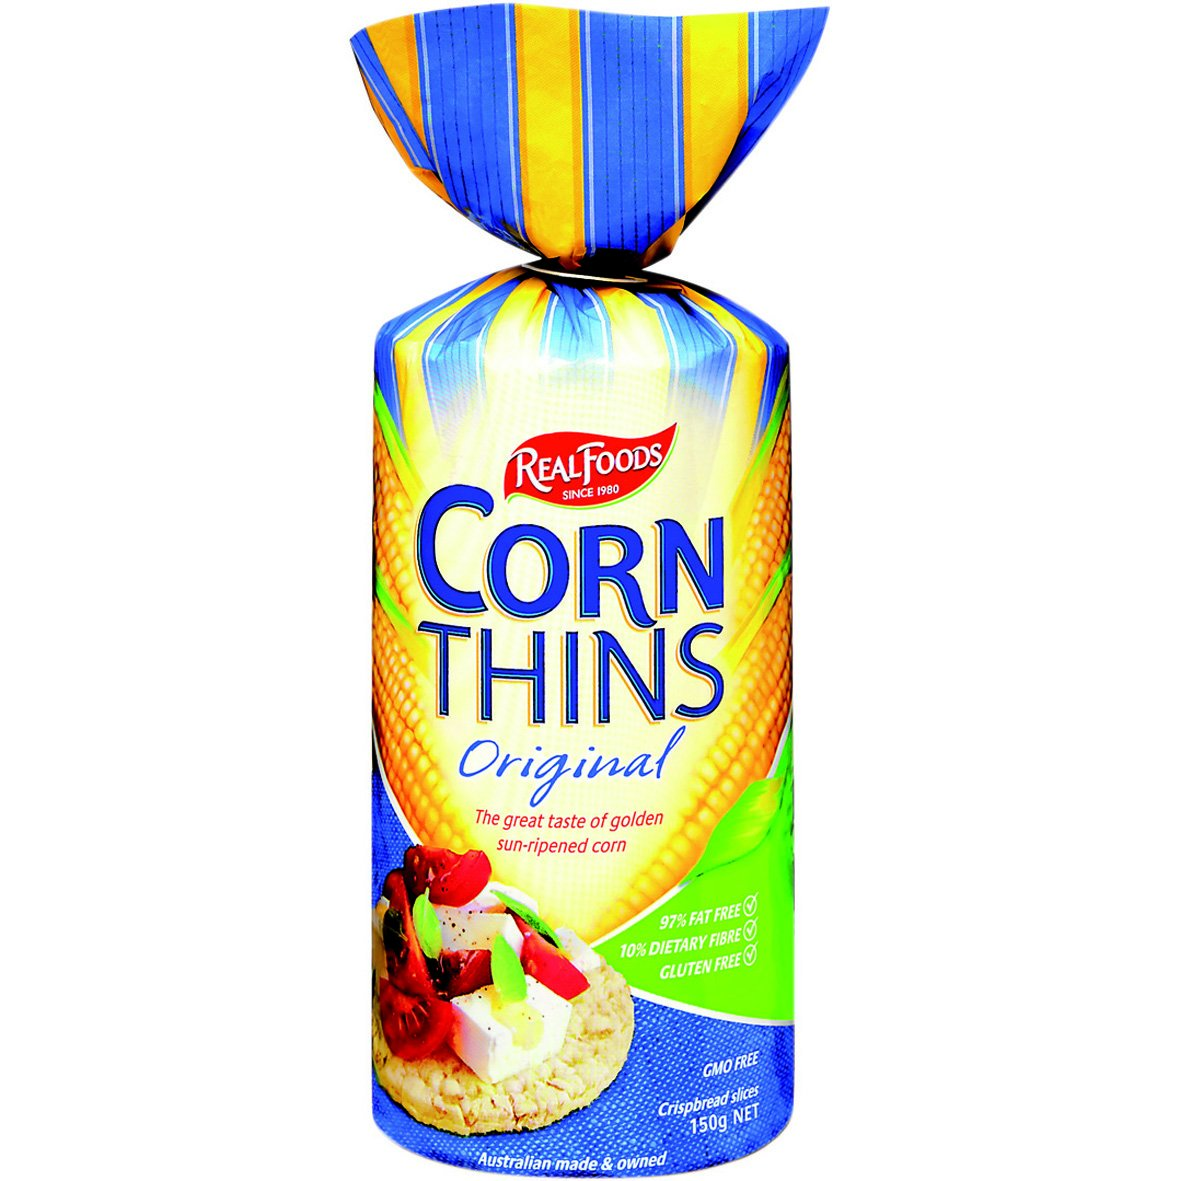 Real Foods Corn Thin ORGNL ORG, 5.3 OZ Pack of 6